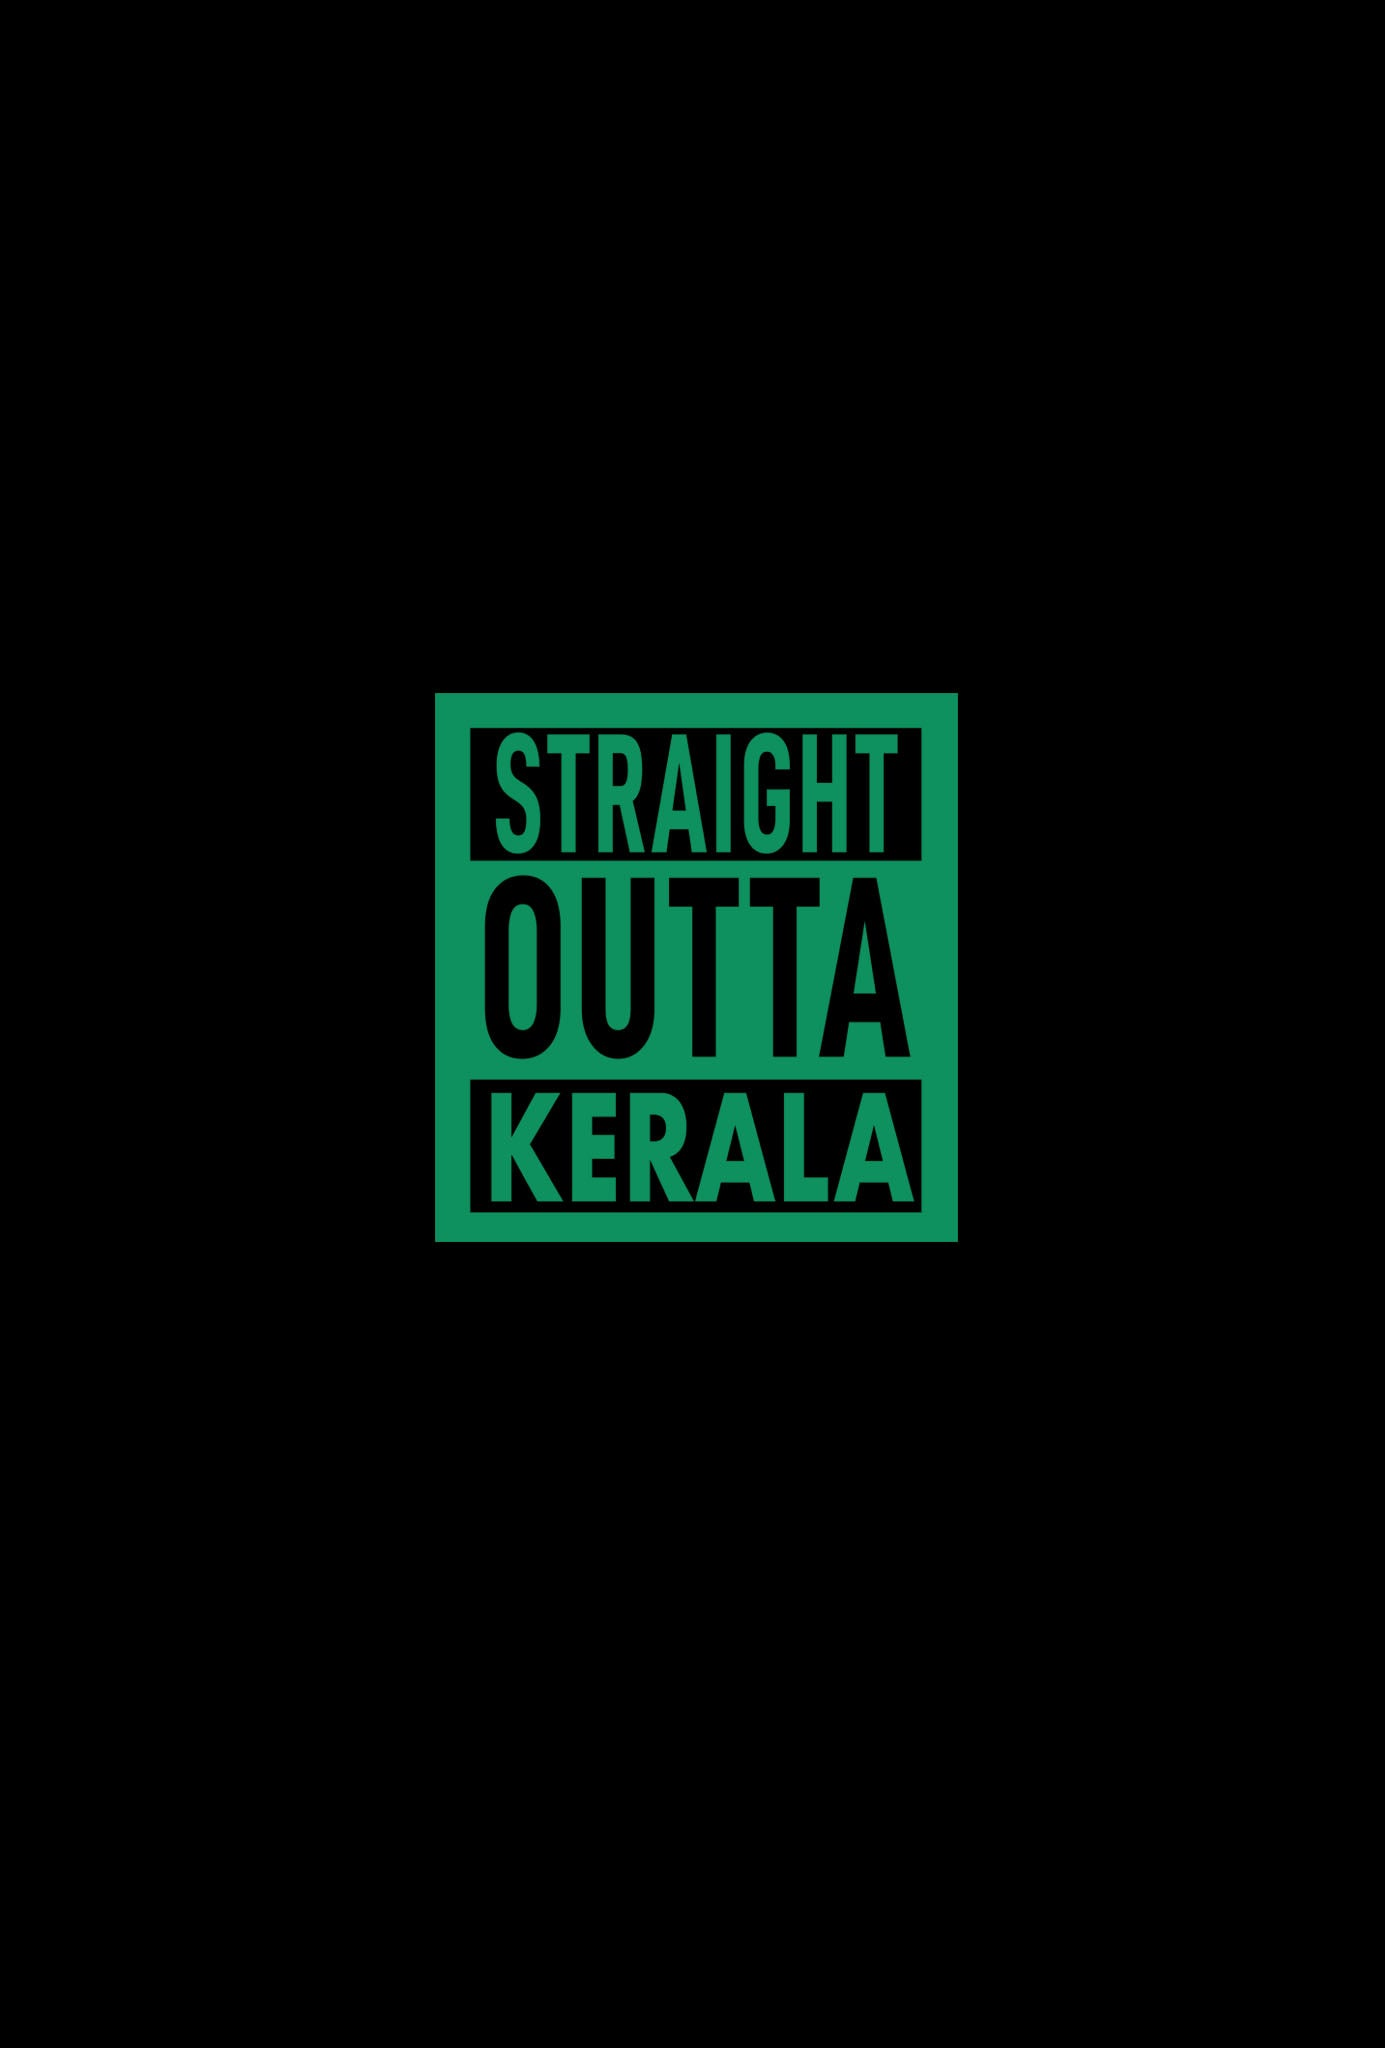 STRAIGHT OUTTA KERALA Unisex T-shirt  for Men/Women | Glow in the Dark